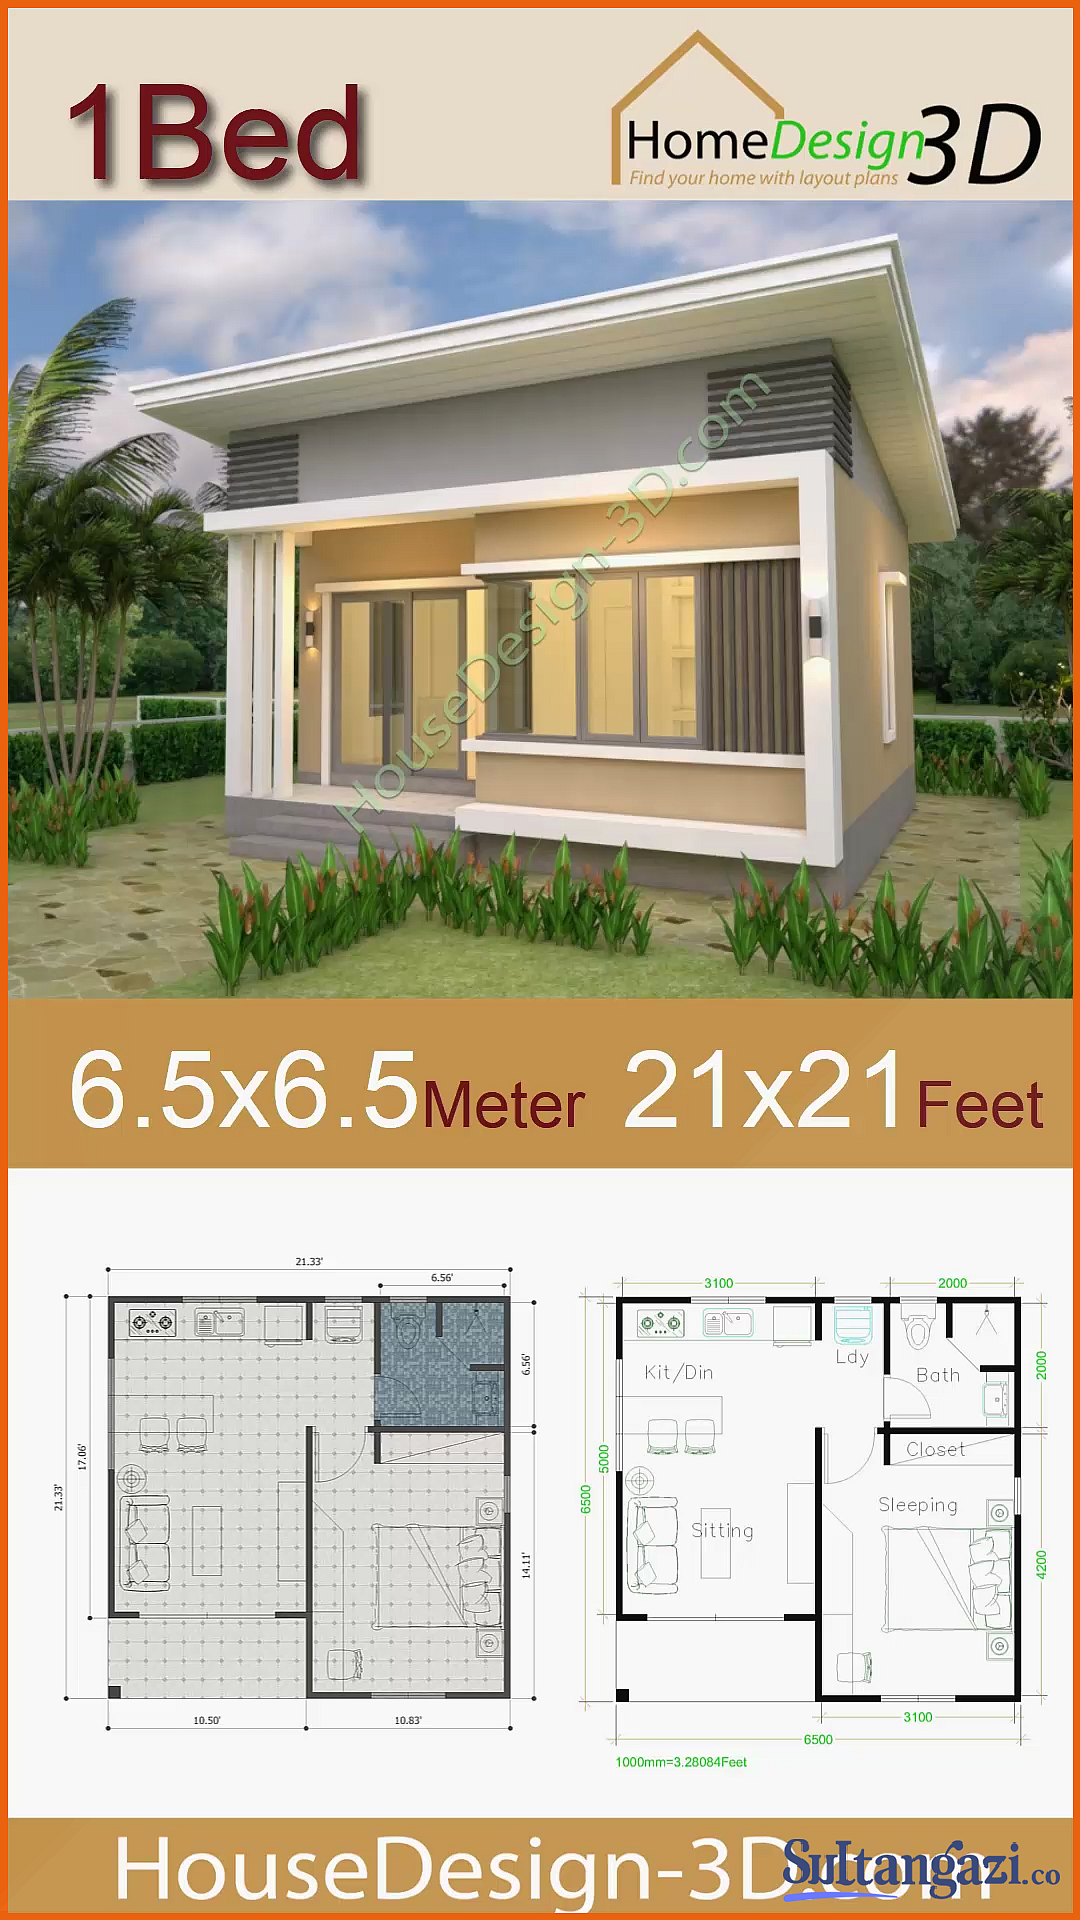 House Plans 21 21 Feet 6 5 6 5m Shed Roof House Plans 21 21 Feet 6 5 6 5m Shed Roof Samphoas Sophoat House Design 3d House Plans 21 21 F